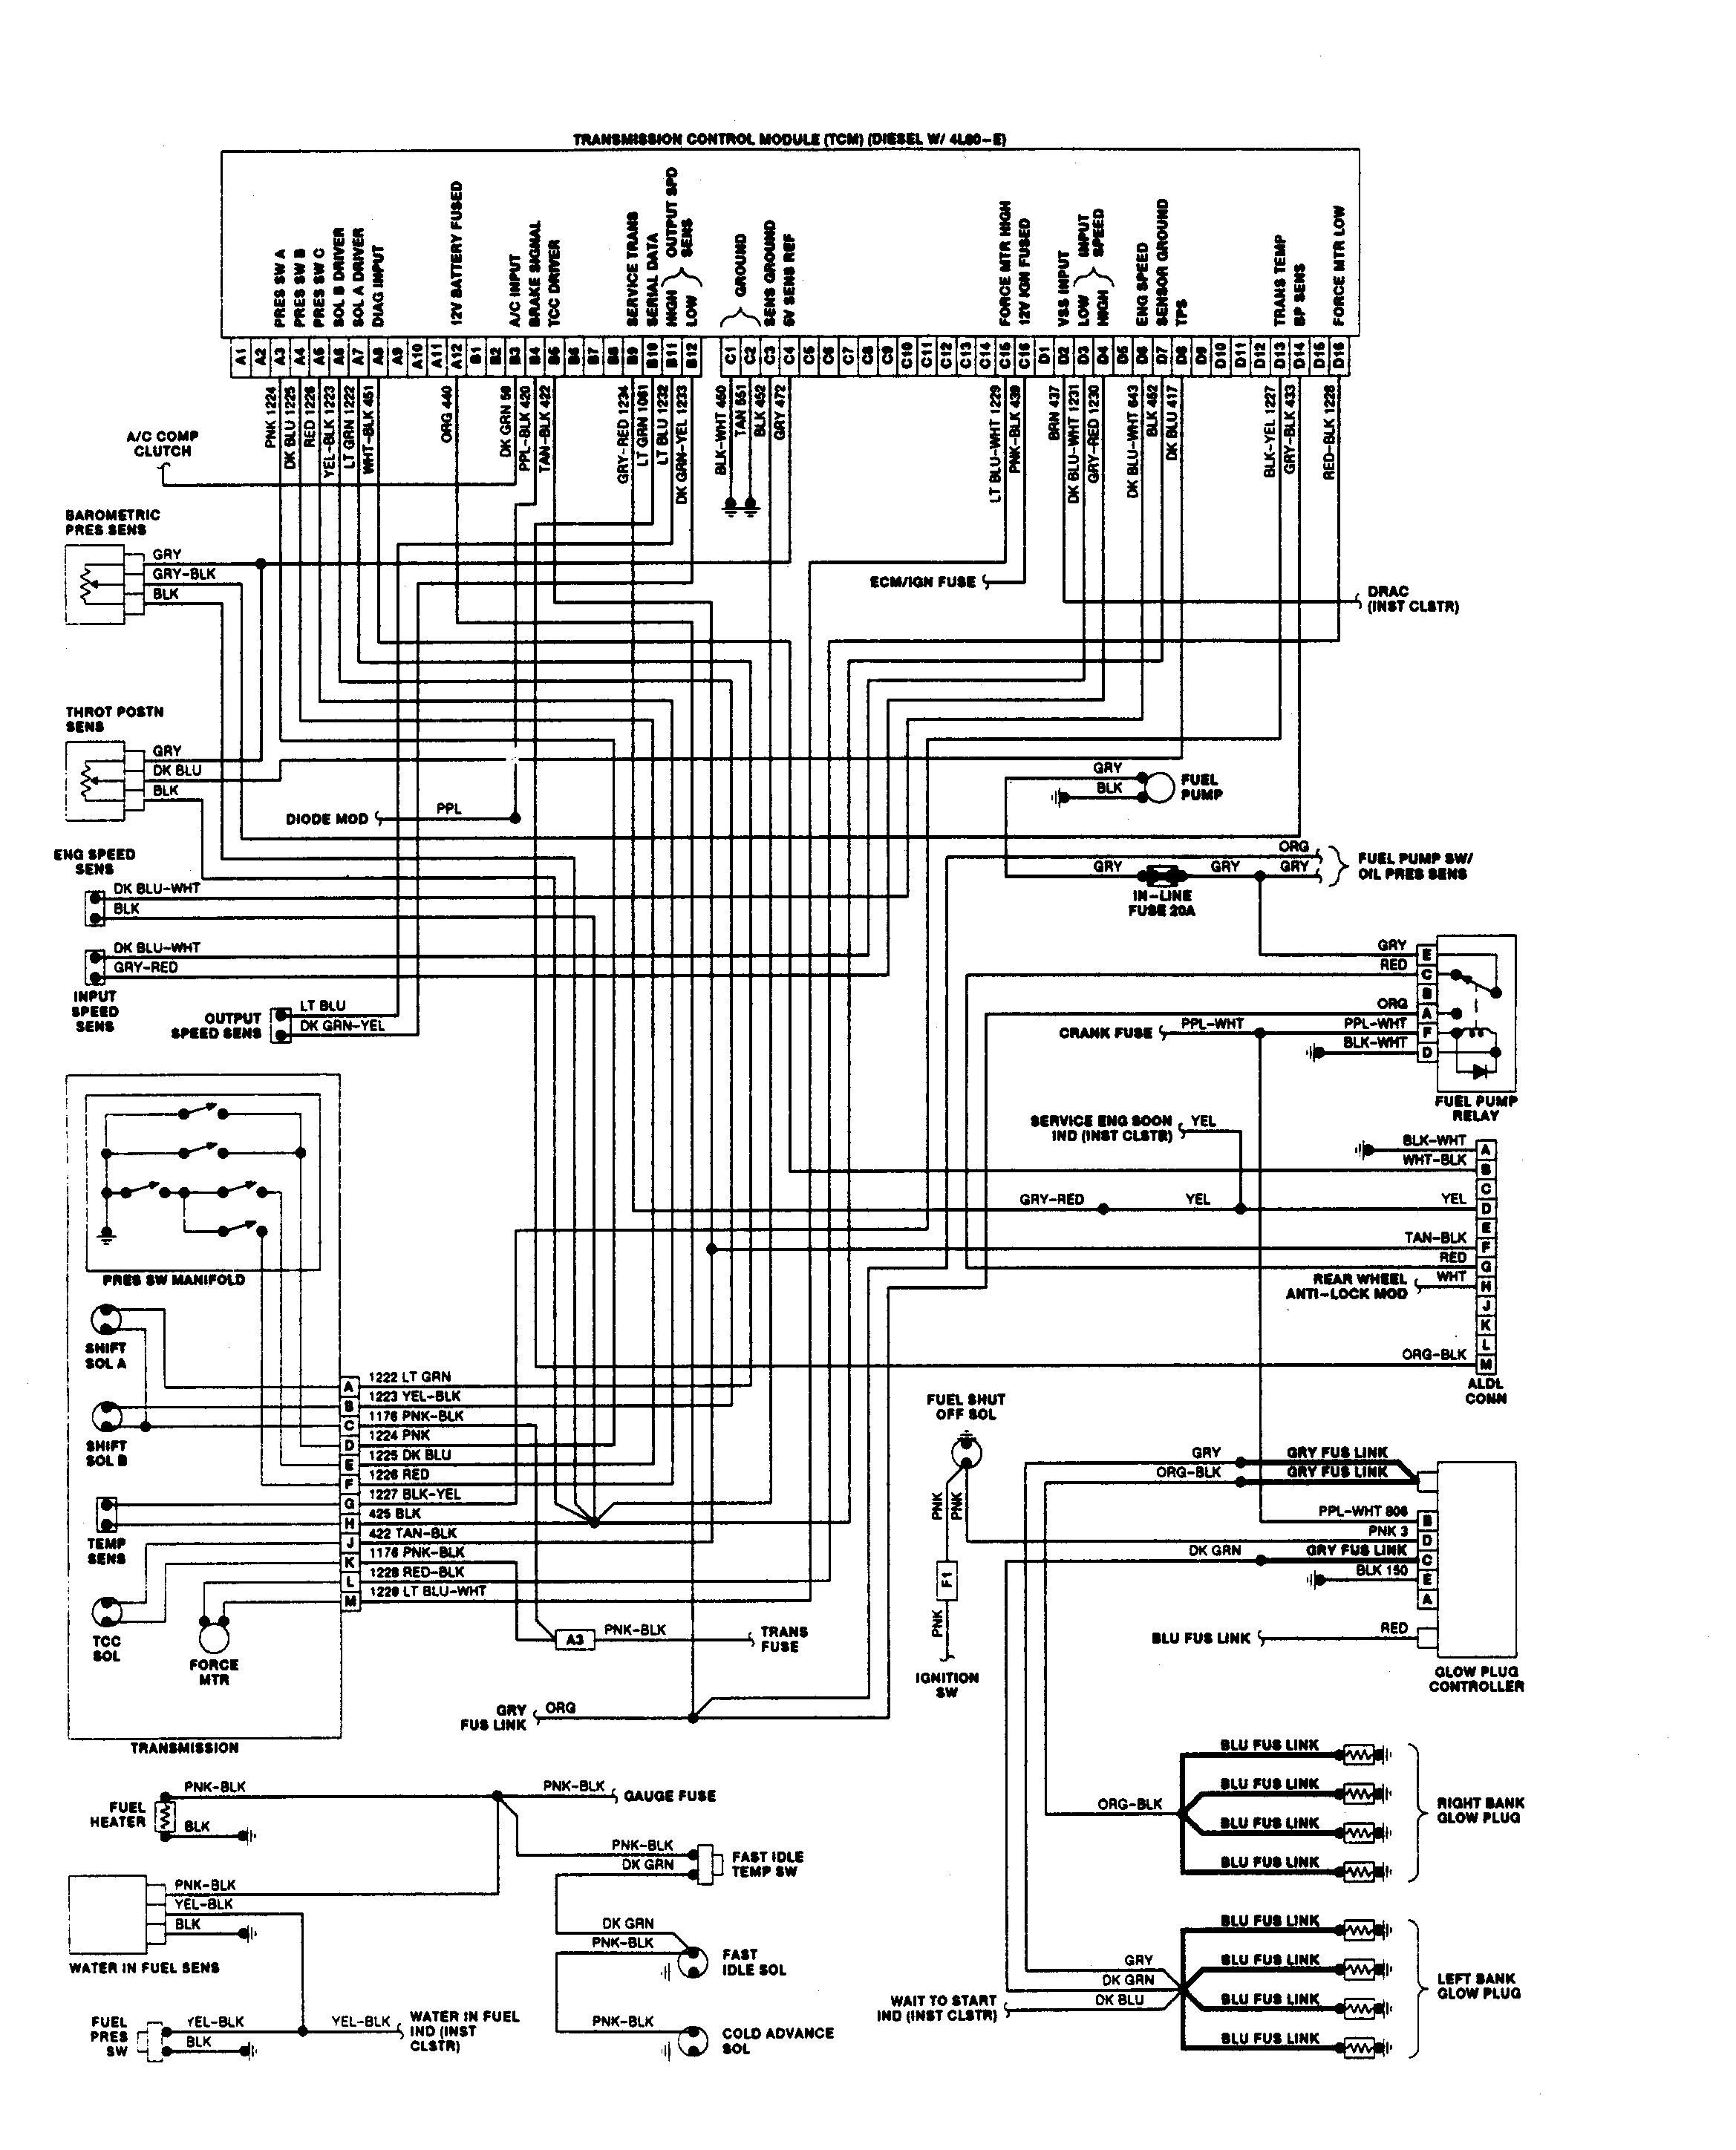 1991 Chevy P30 Wiring Diagrams | Wiring Diagrams